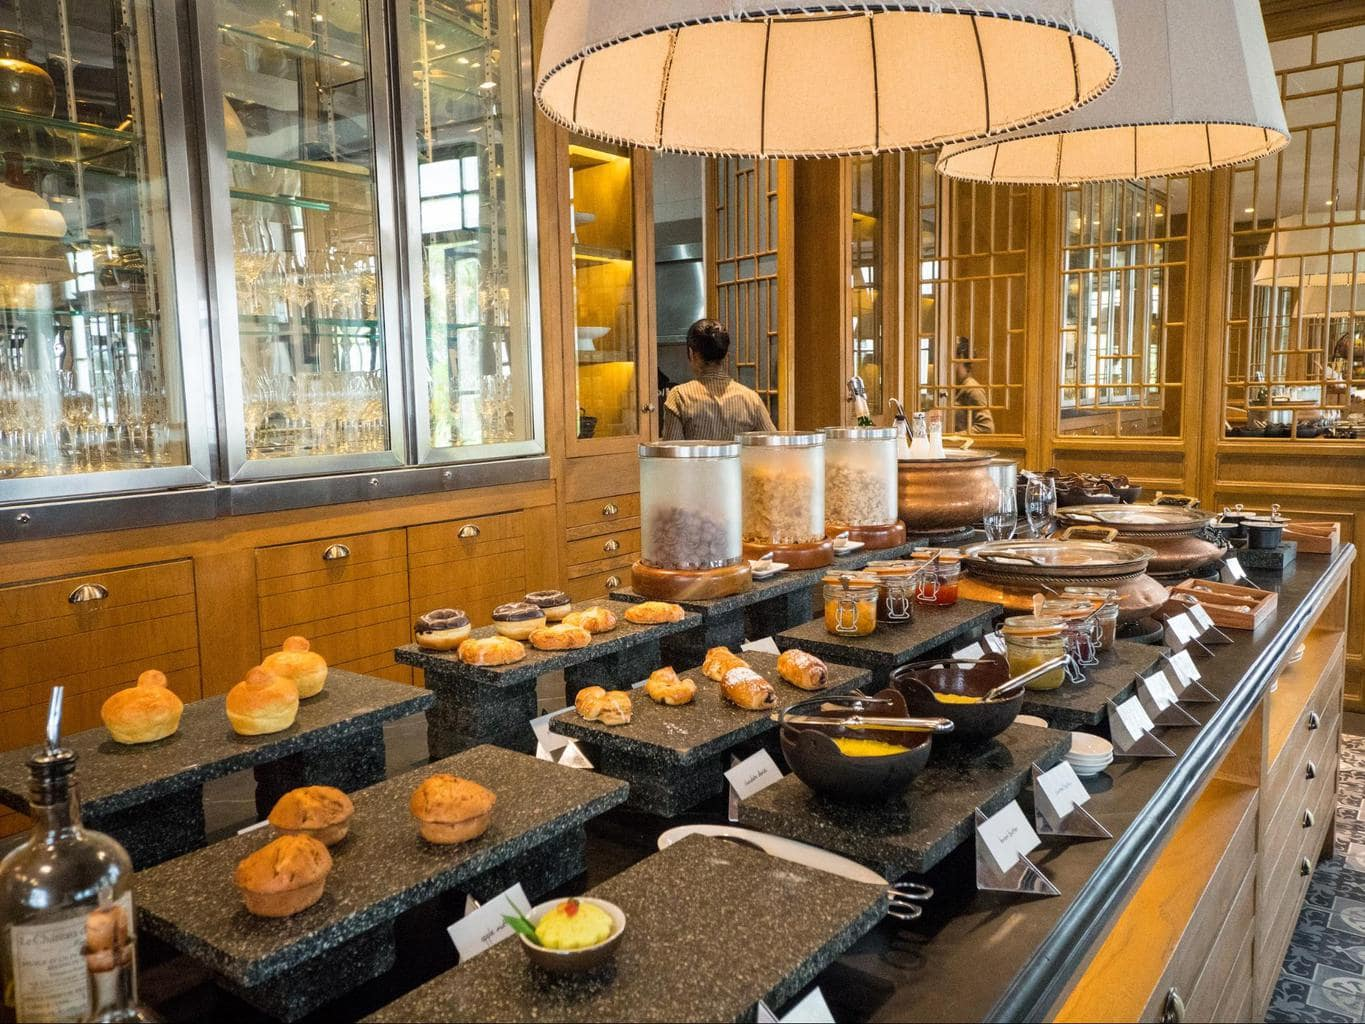 The breakfast buffet at The Sanchaya